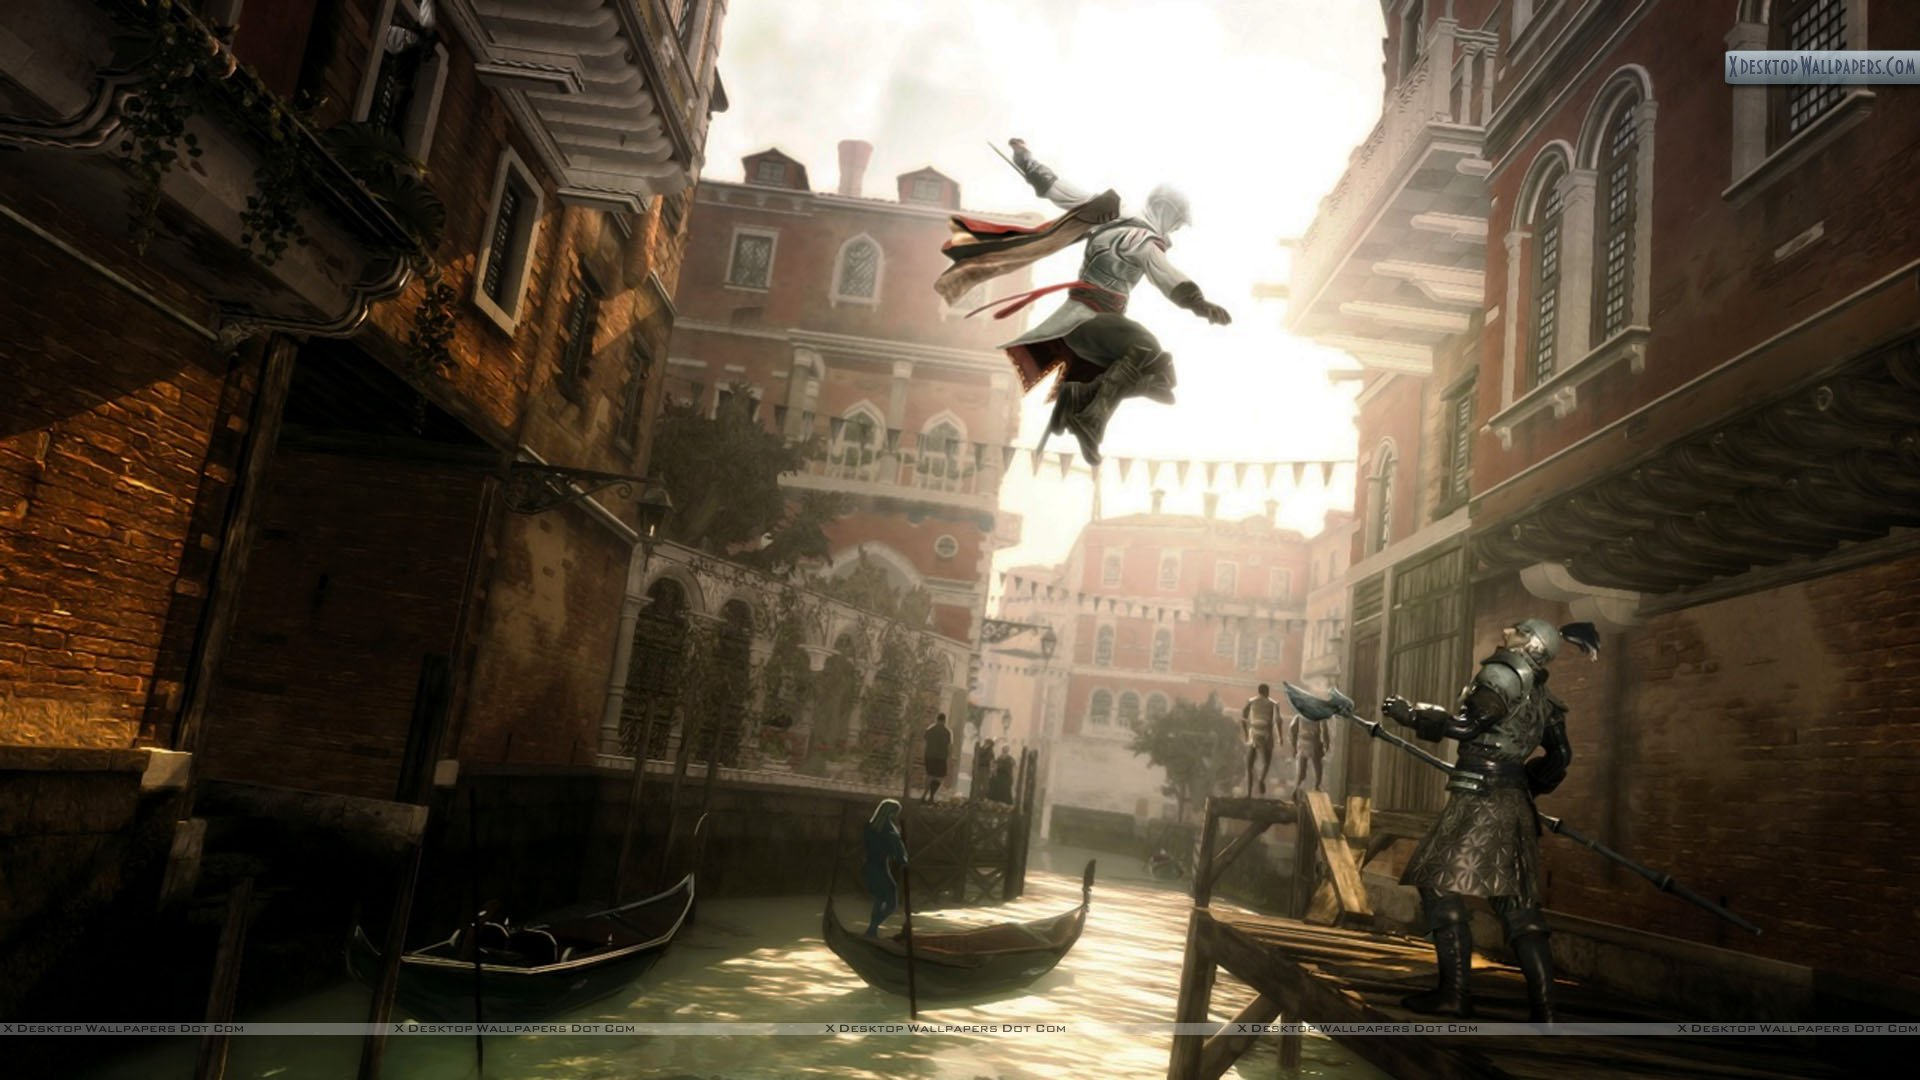 Assassins Creed Ezio Wallpaper Hd Posted By Christopher Johnson